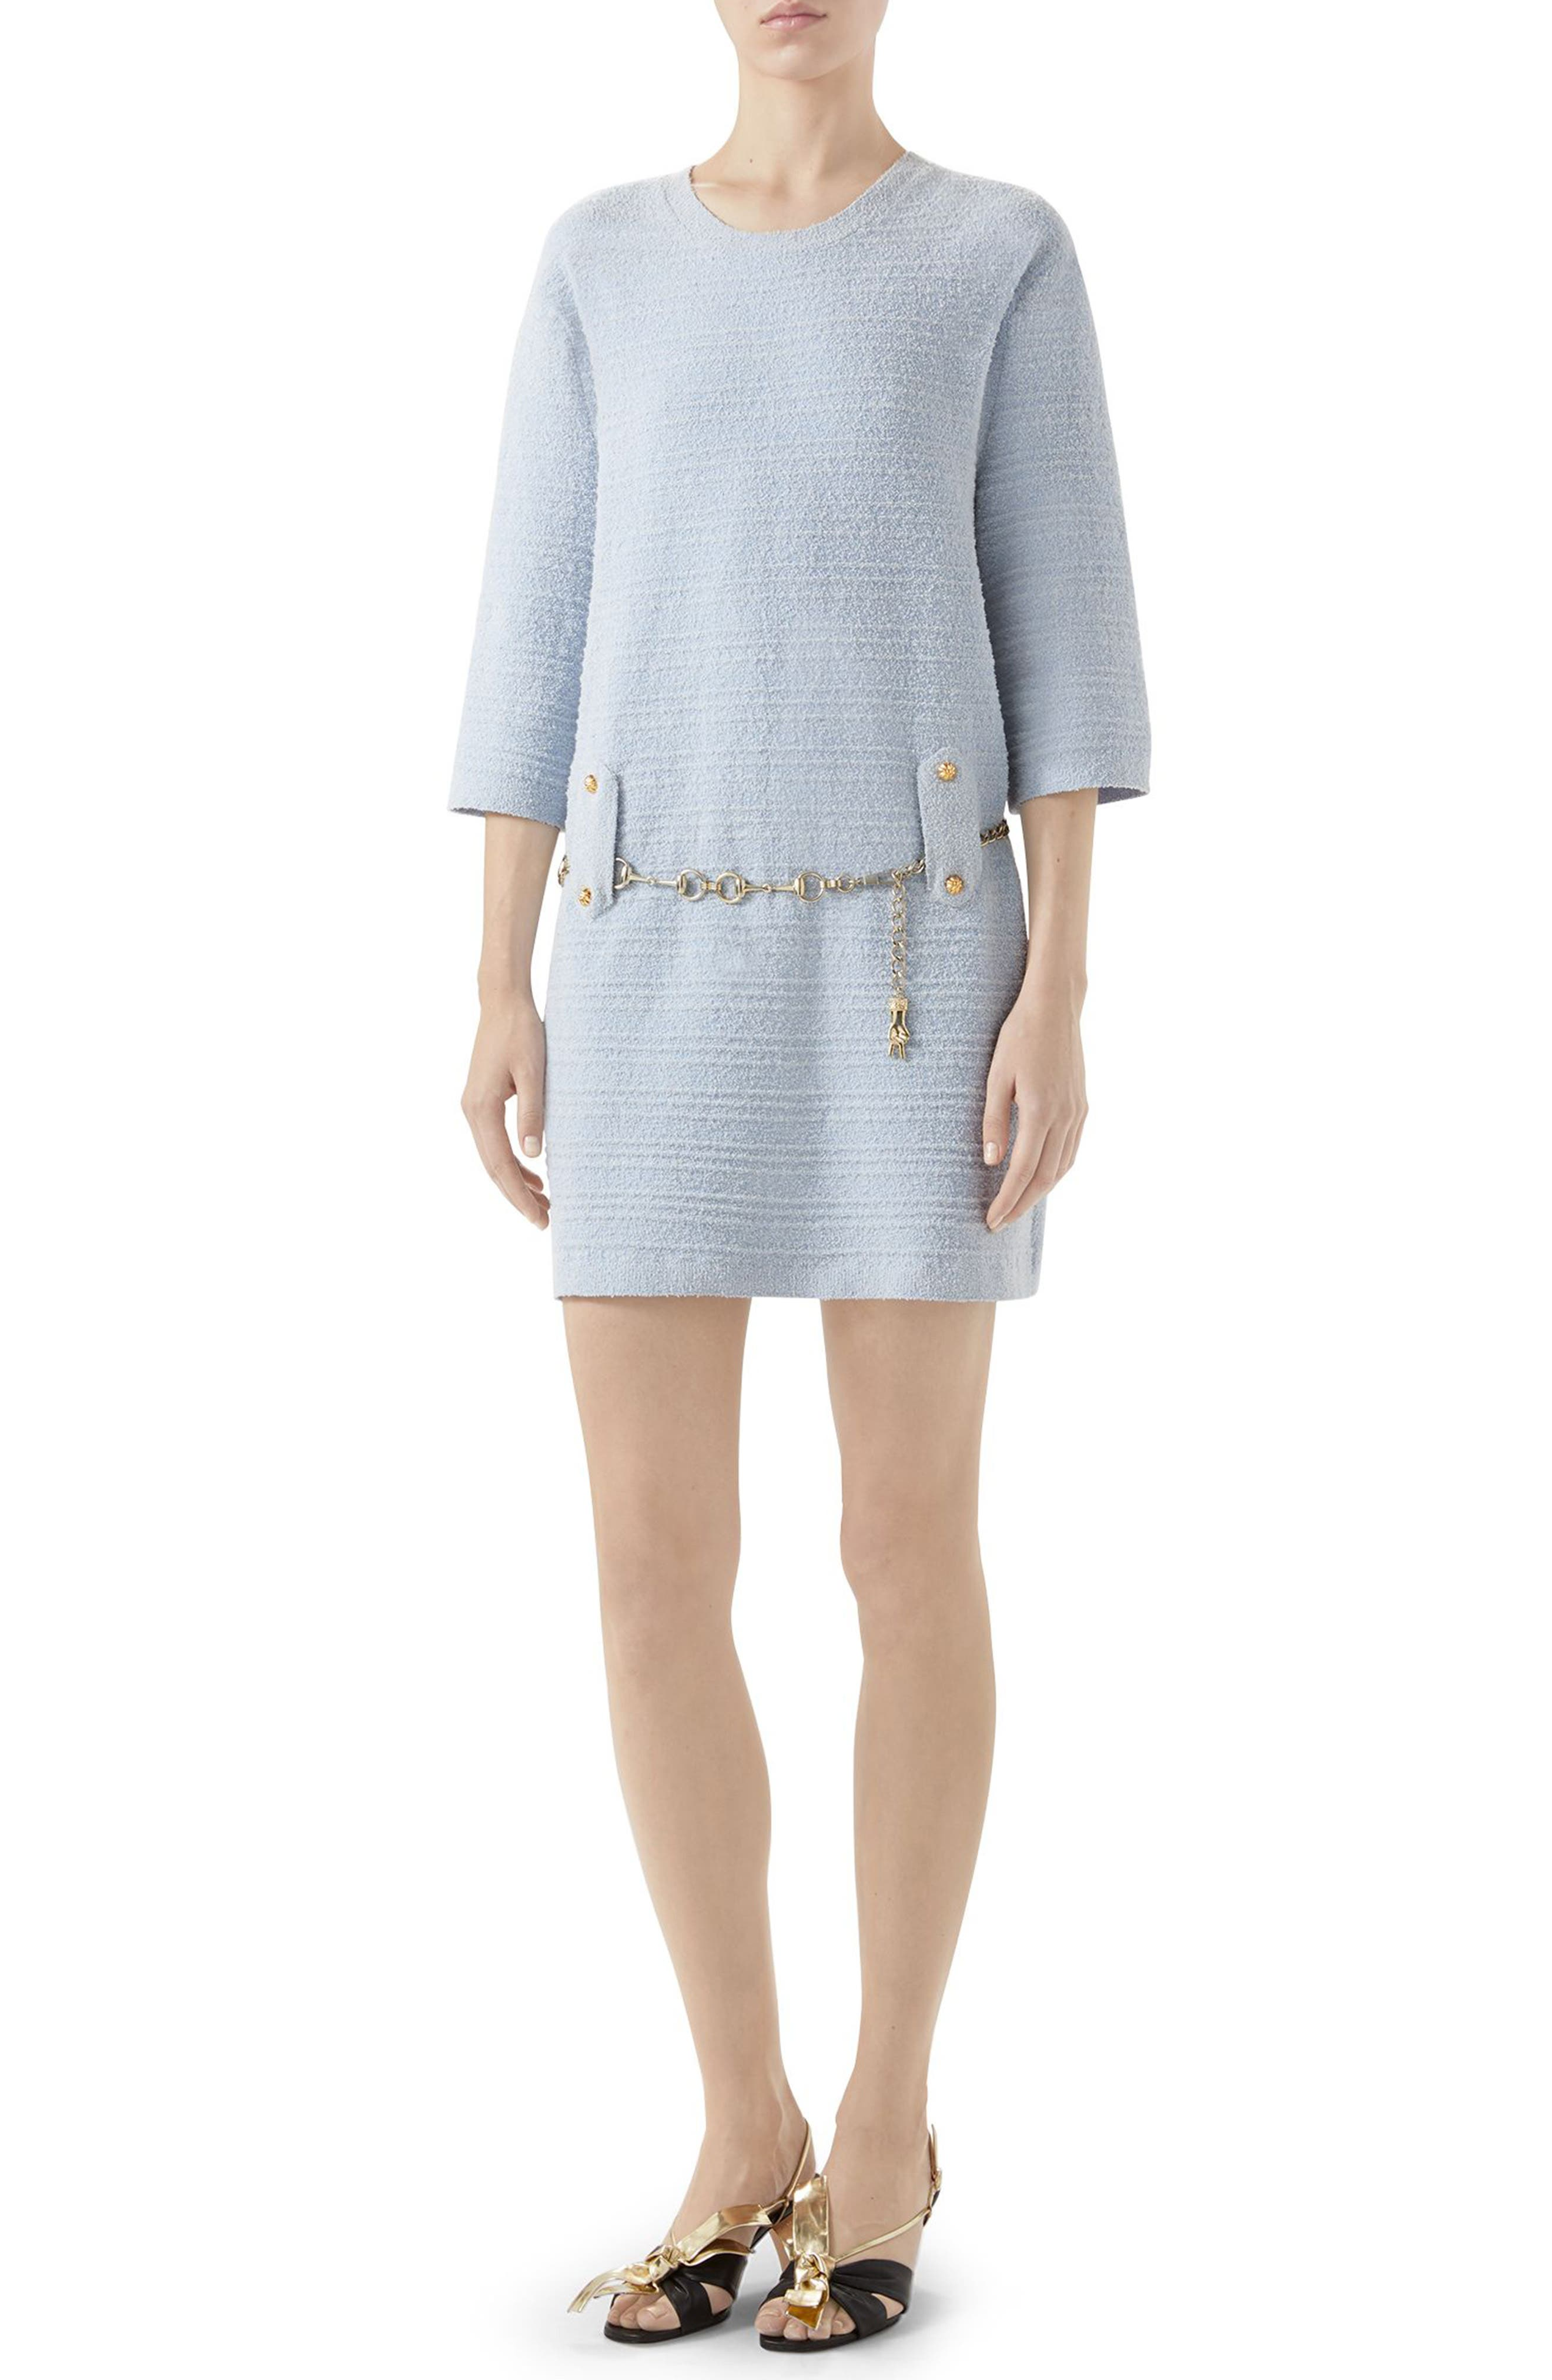 Gucci Belted Cotton Blend Sweater Dress, Ivory